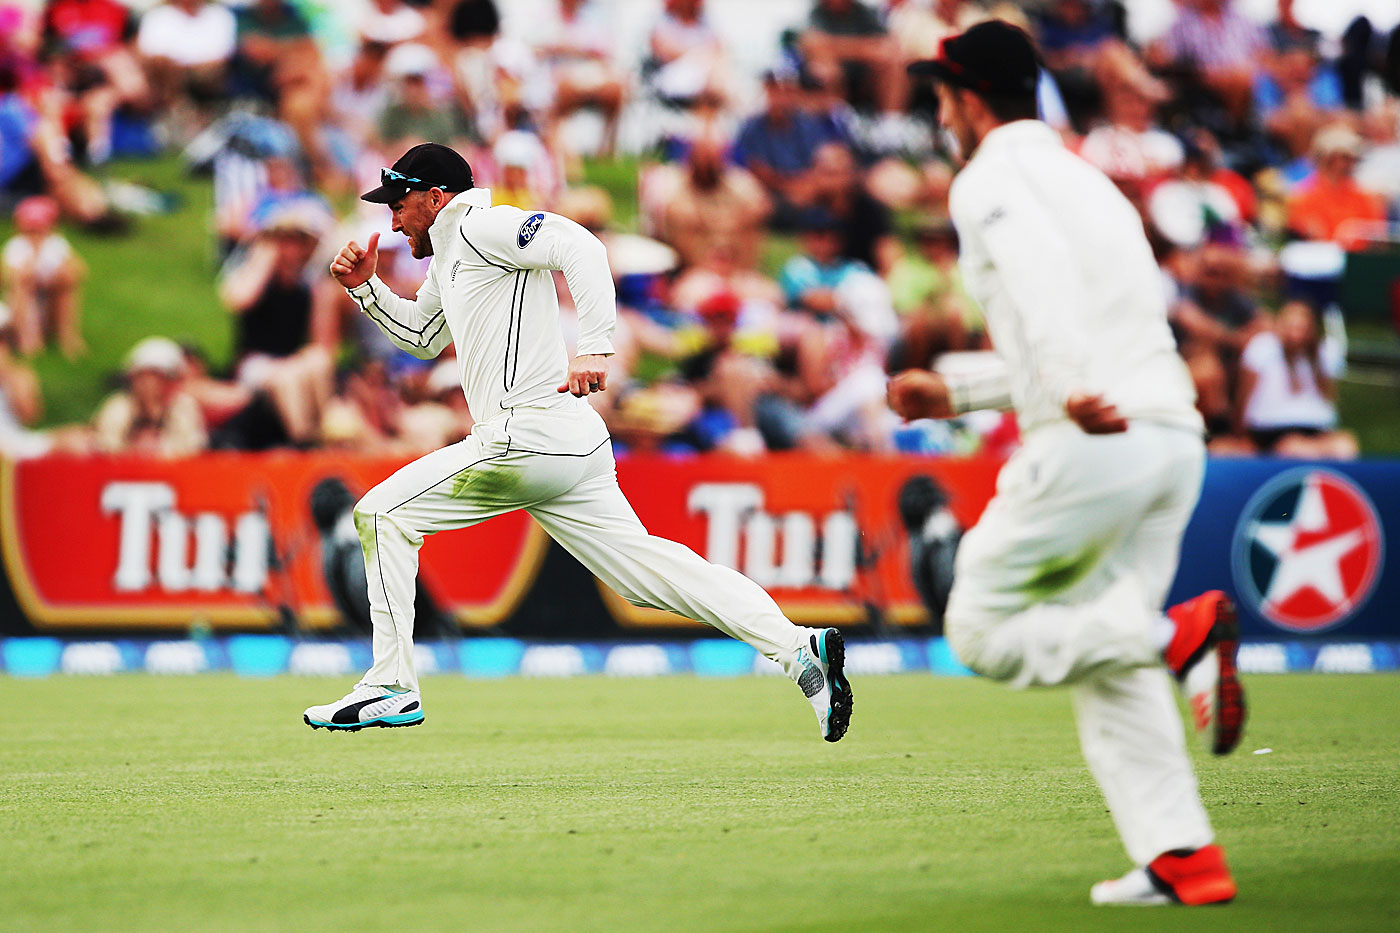 When Brendon McCullum chases, the world follows